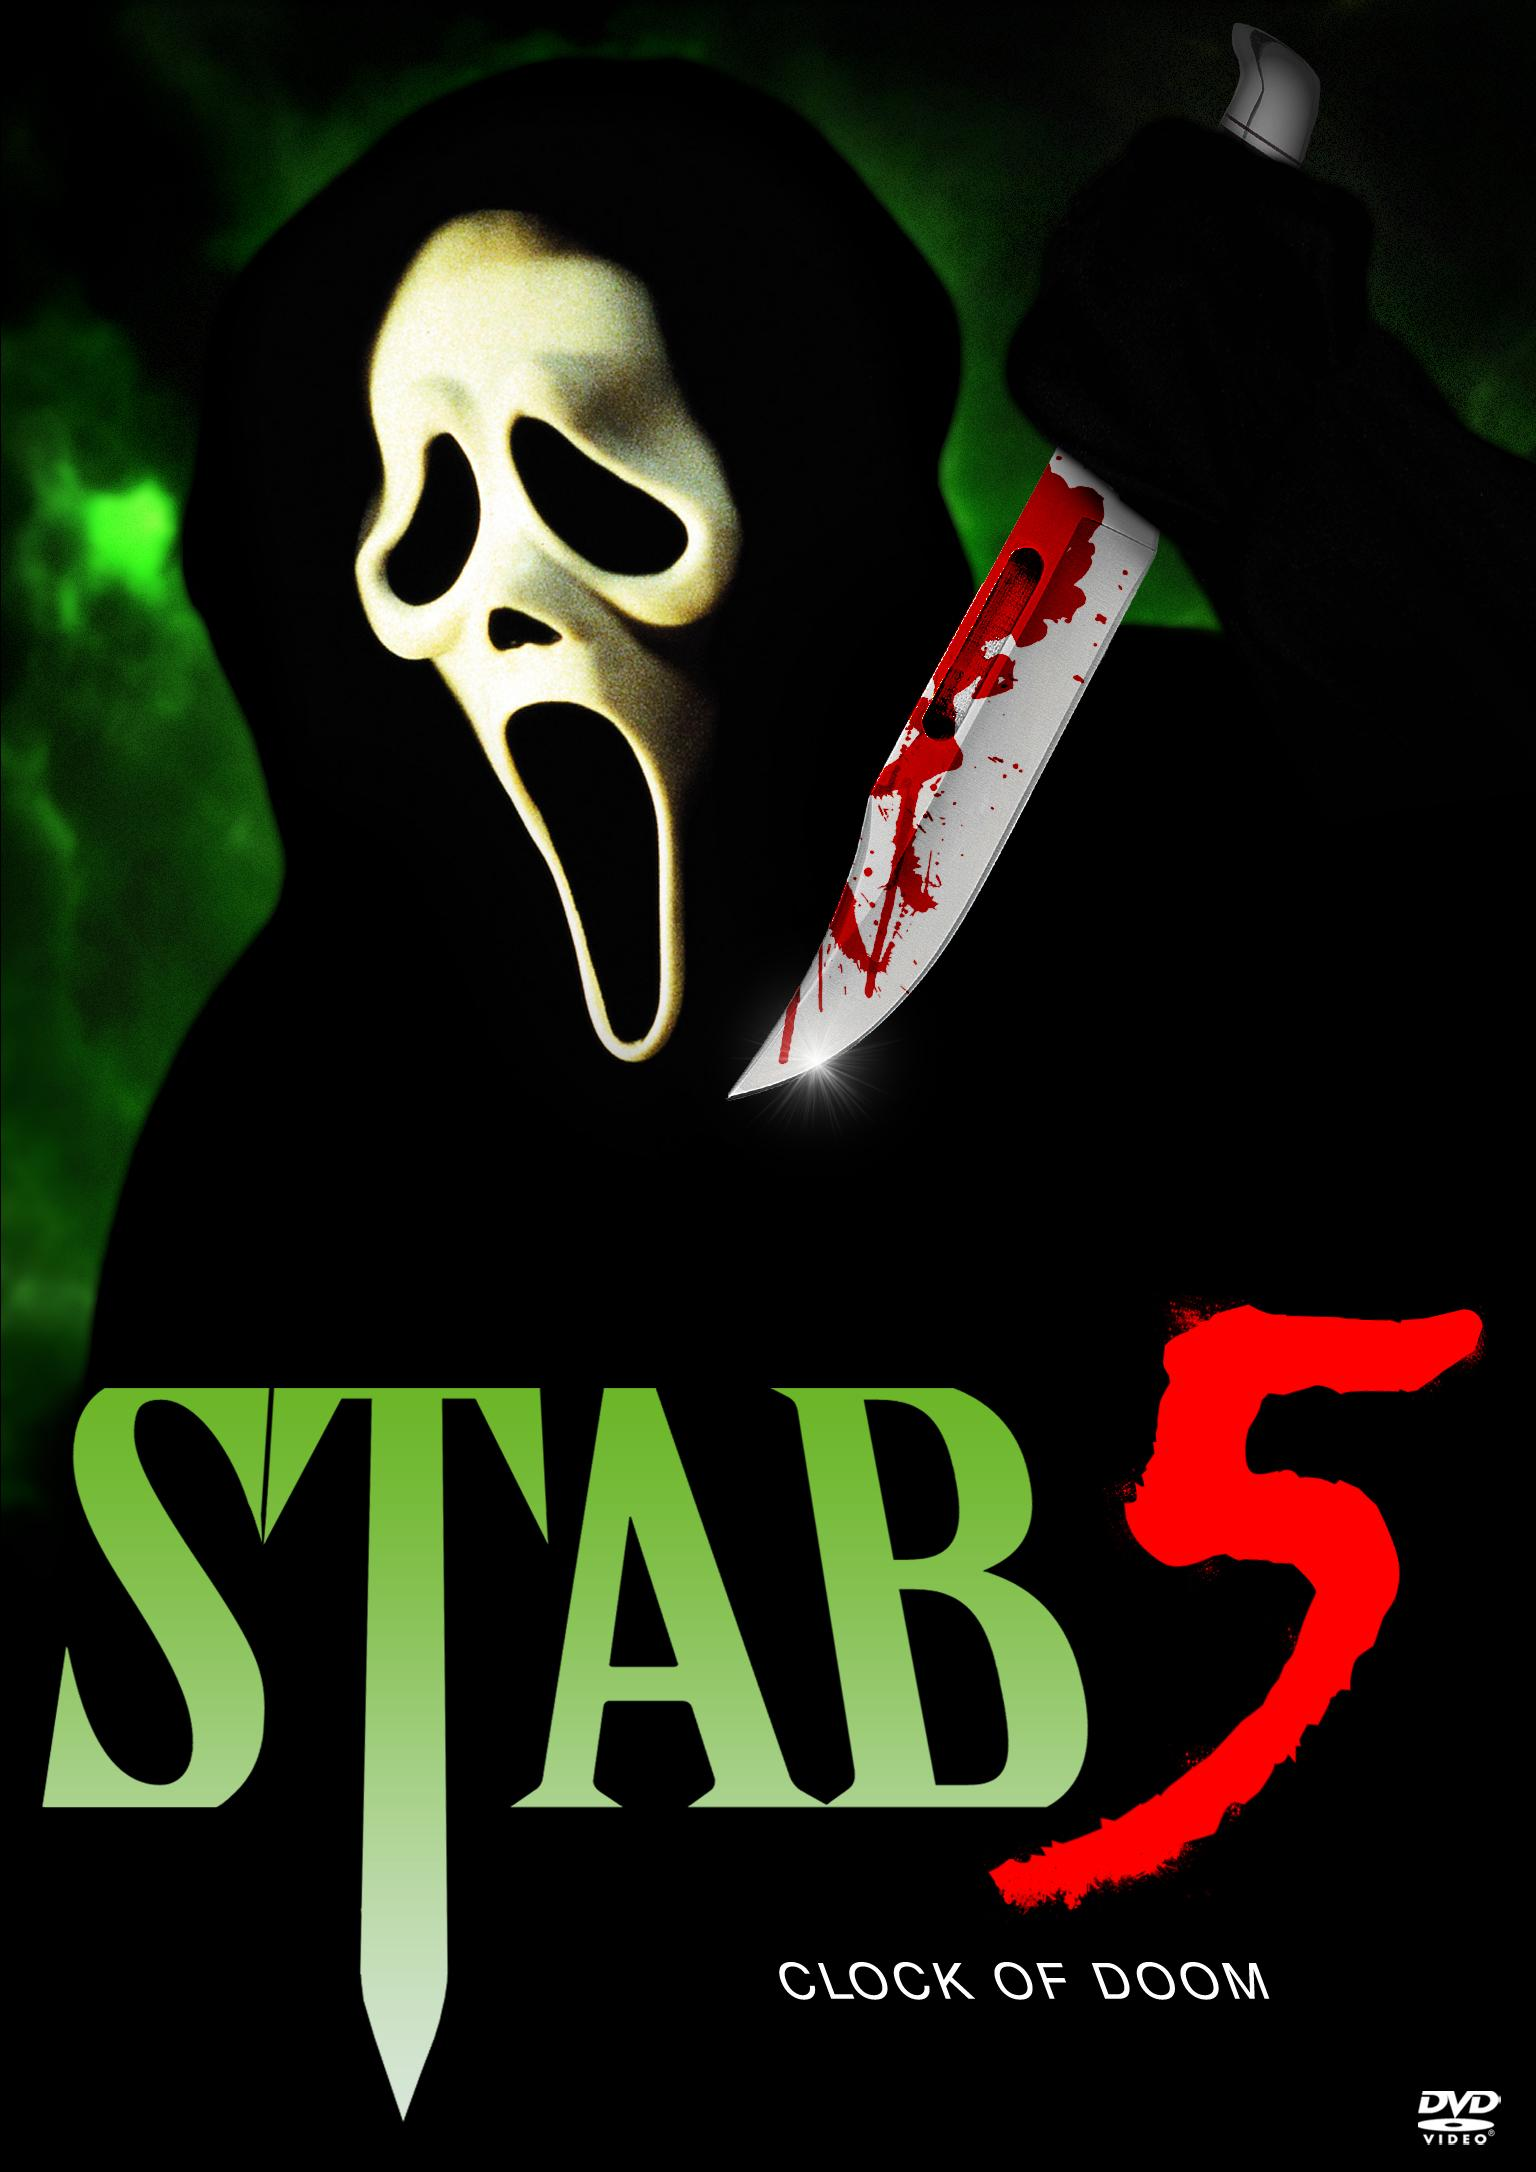 Stab 5: Clock of Doom - Scream Wiki